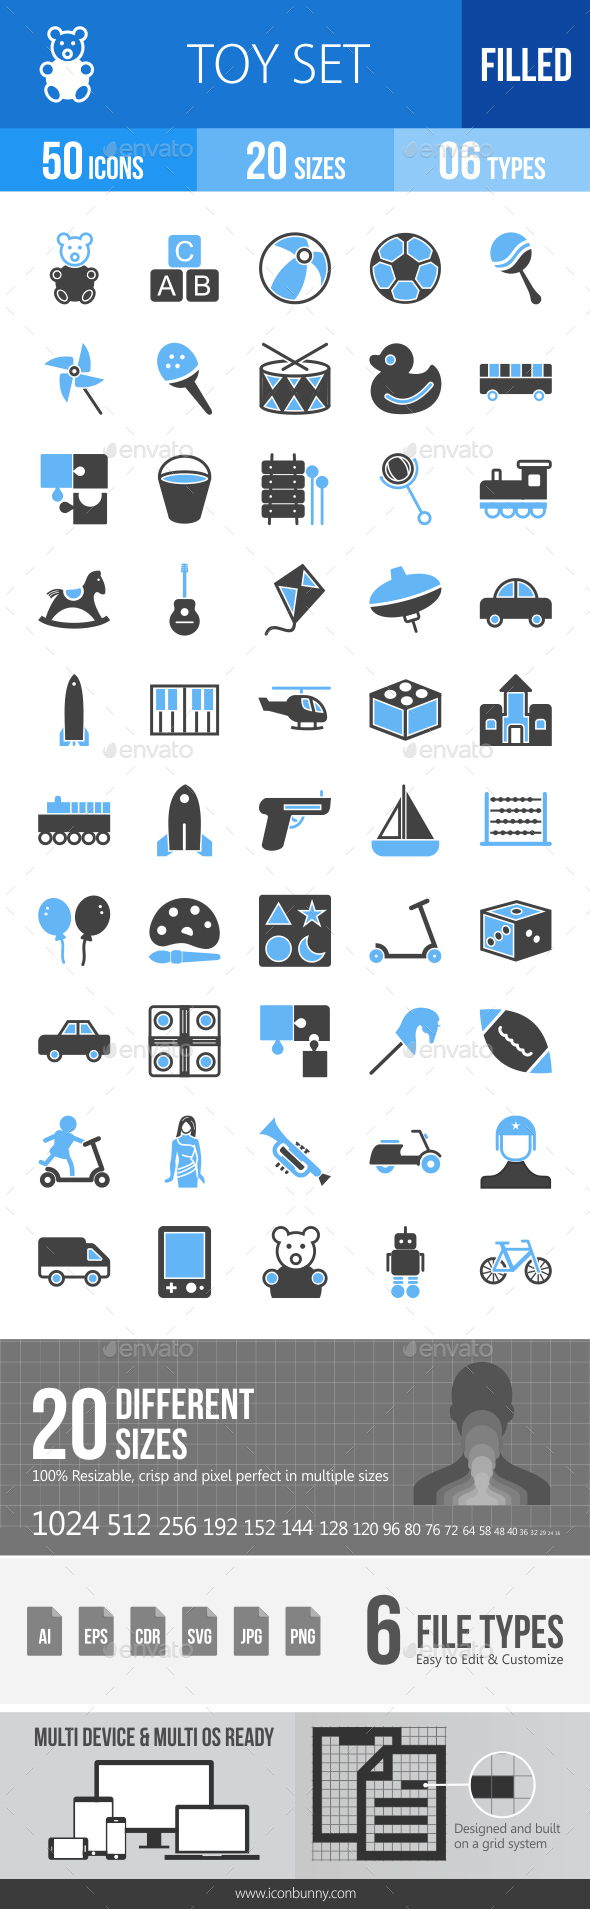 50 Toy Set Filled Blue & Black Icons - Icons